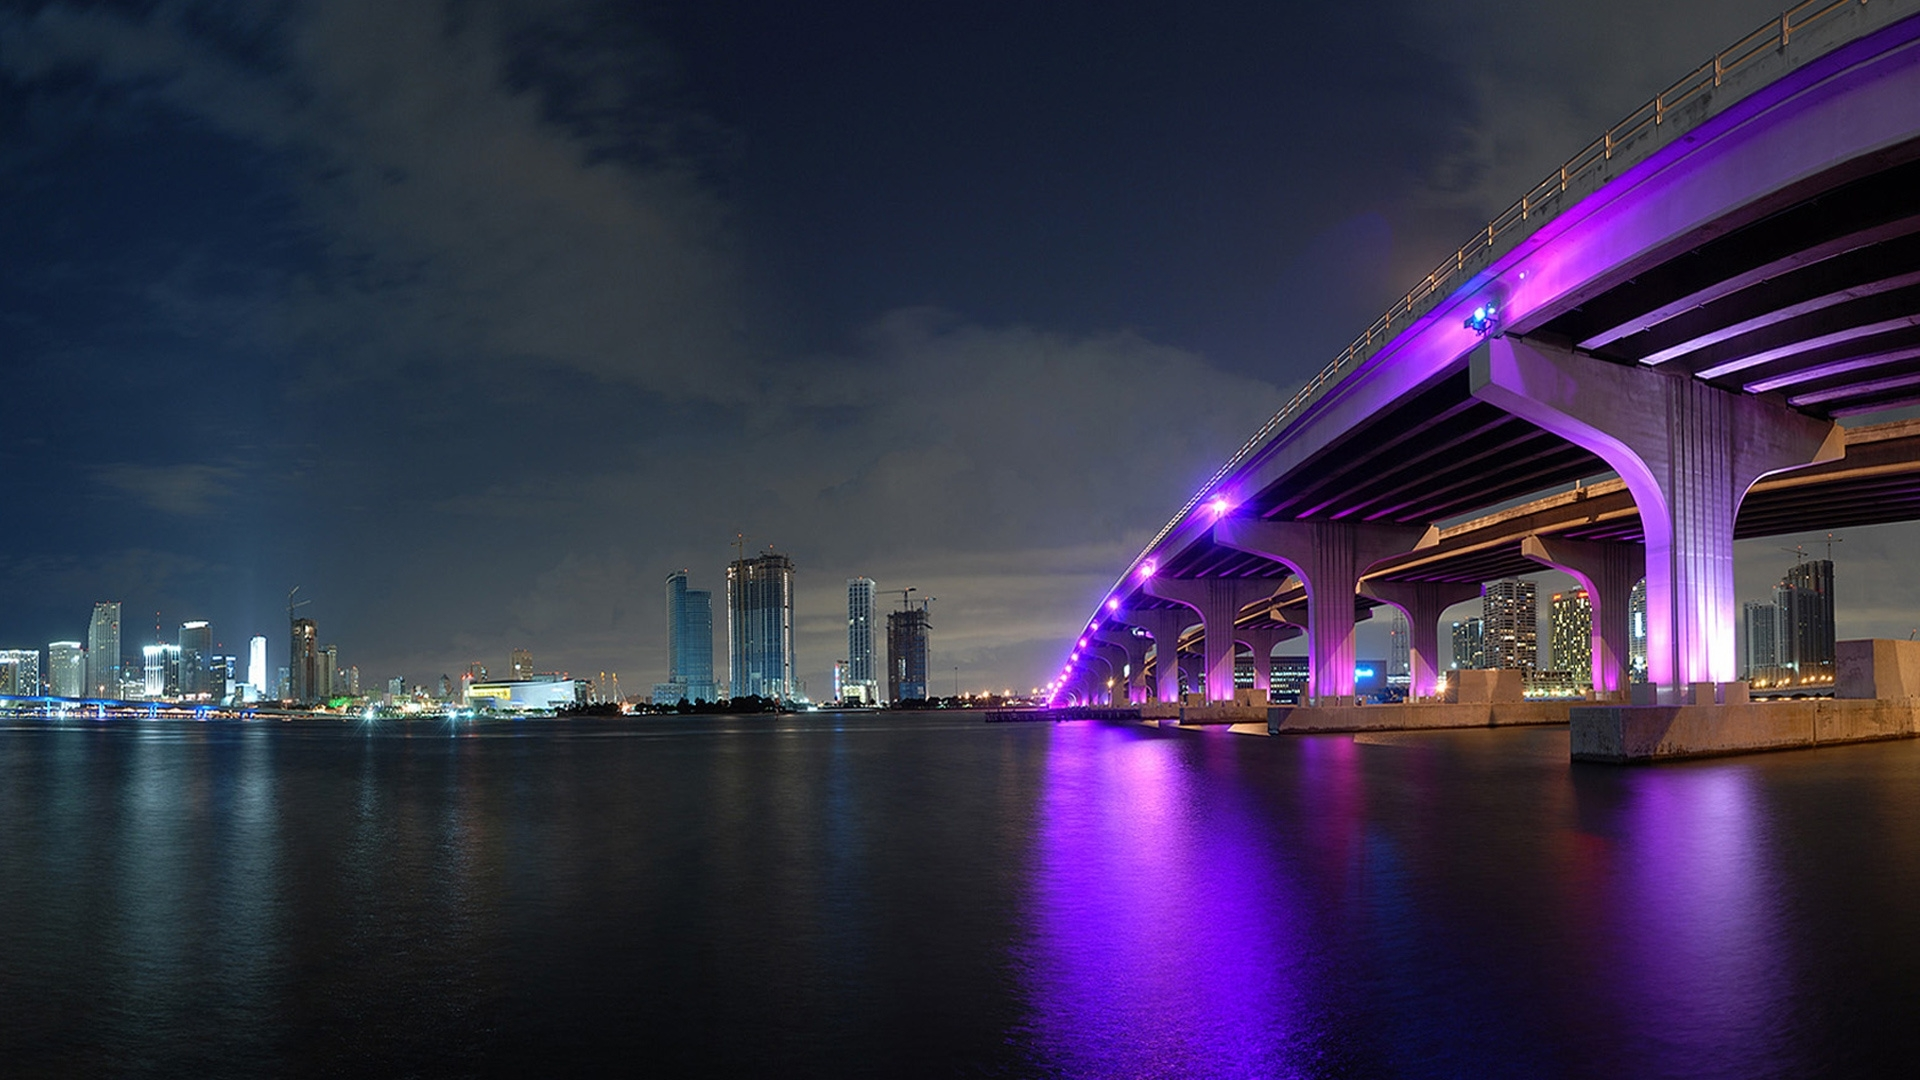 50244 download wallpaper Landscape, Cities, Rivers, Bridges screensavers and pictures for free